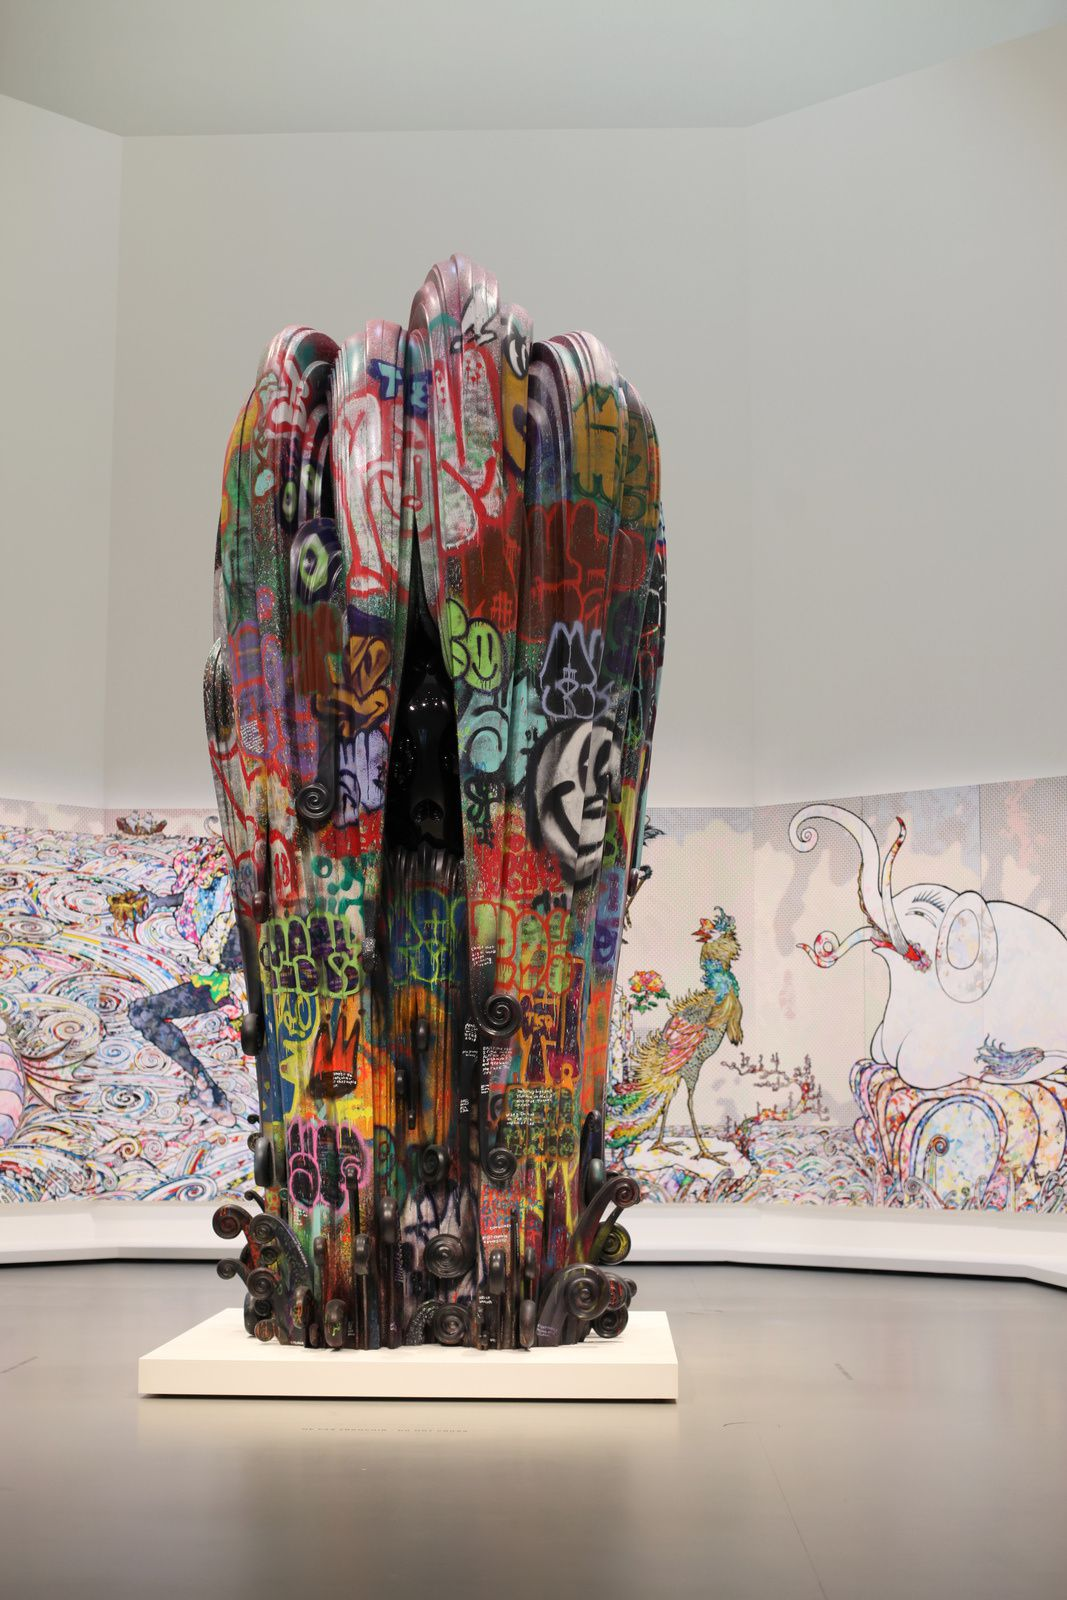 "Sculpture centrale de l'installation ""The Octopus eats its own leg "", 2017 de Takashi MURAKAMI - Courtesy FONDATION LOUIS VUITTON © Photo Éric Simon"